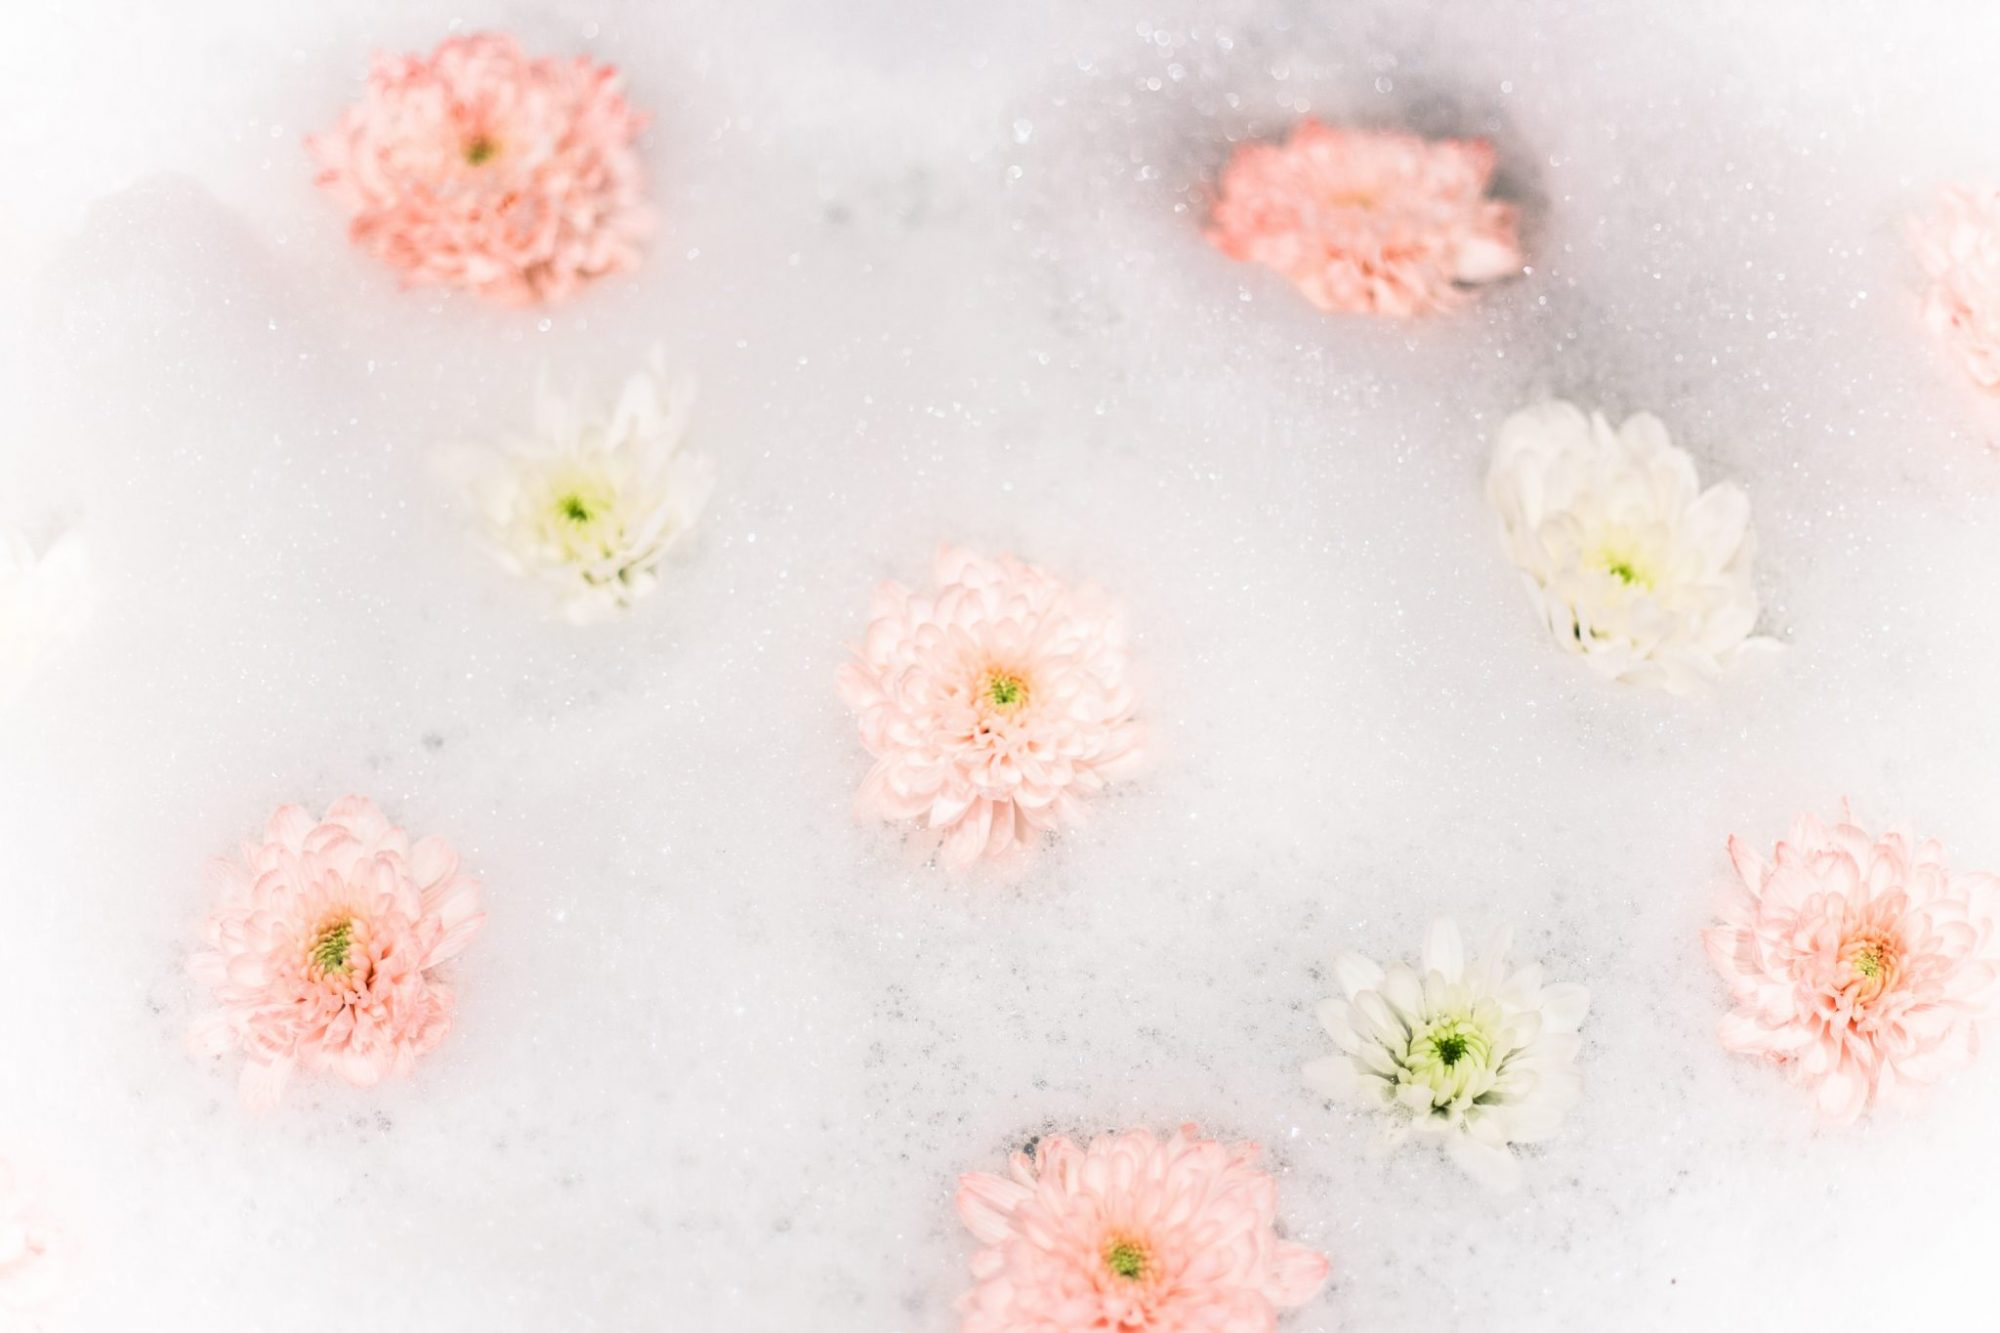 Before I Pamper Myself With A Bubble Bath, I Always Dry Brush To Really  Exfoliate